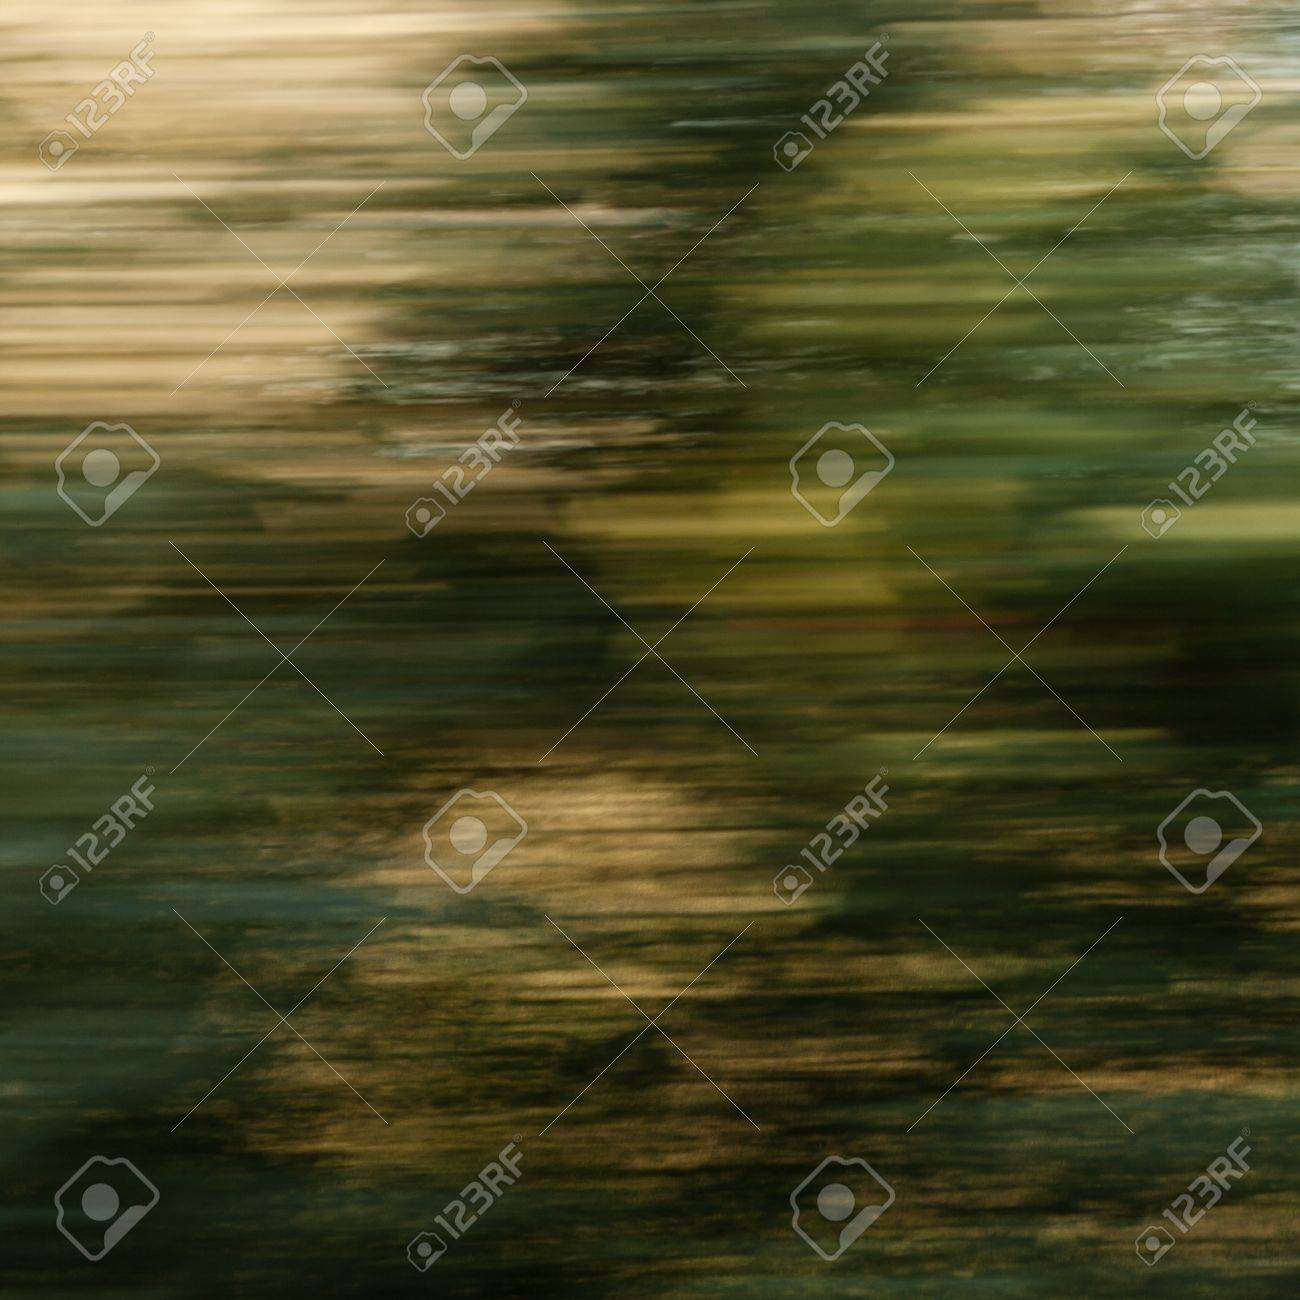 Abstract painting-like background  trees along the railroad seen from a fast moving train Stock Photo - 13317427